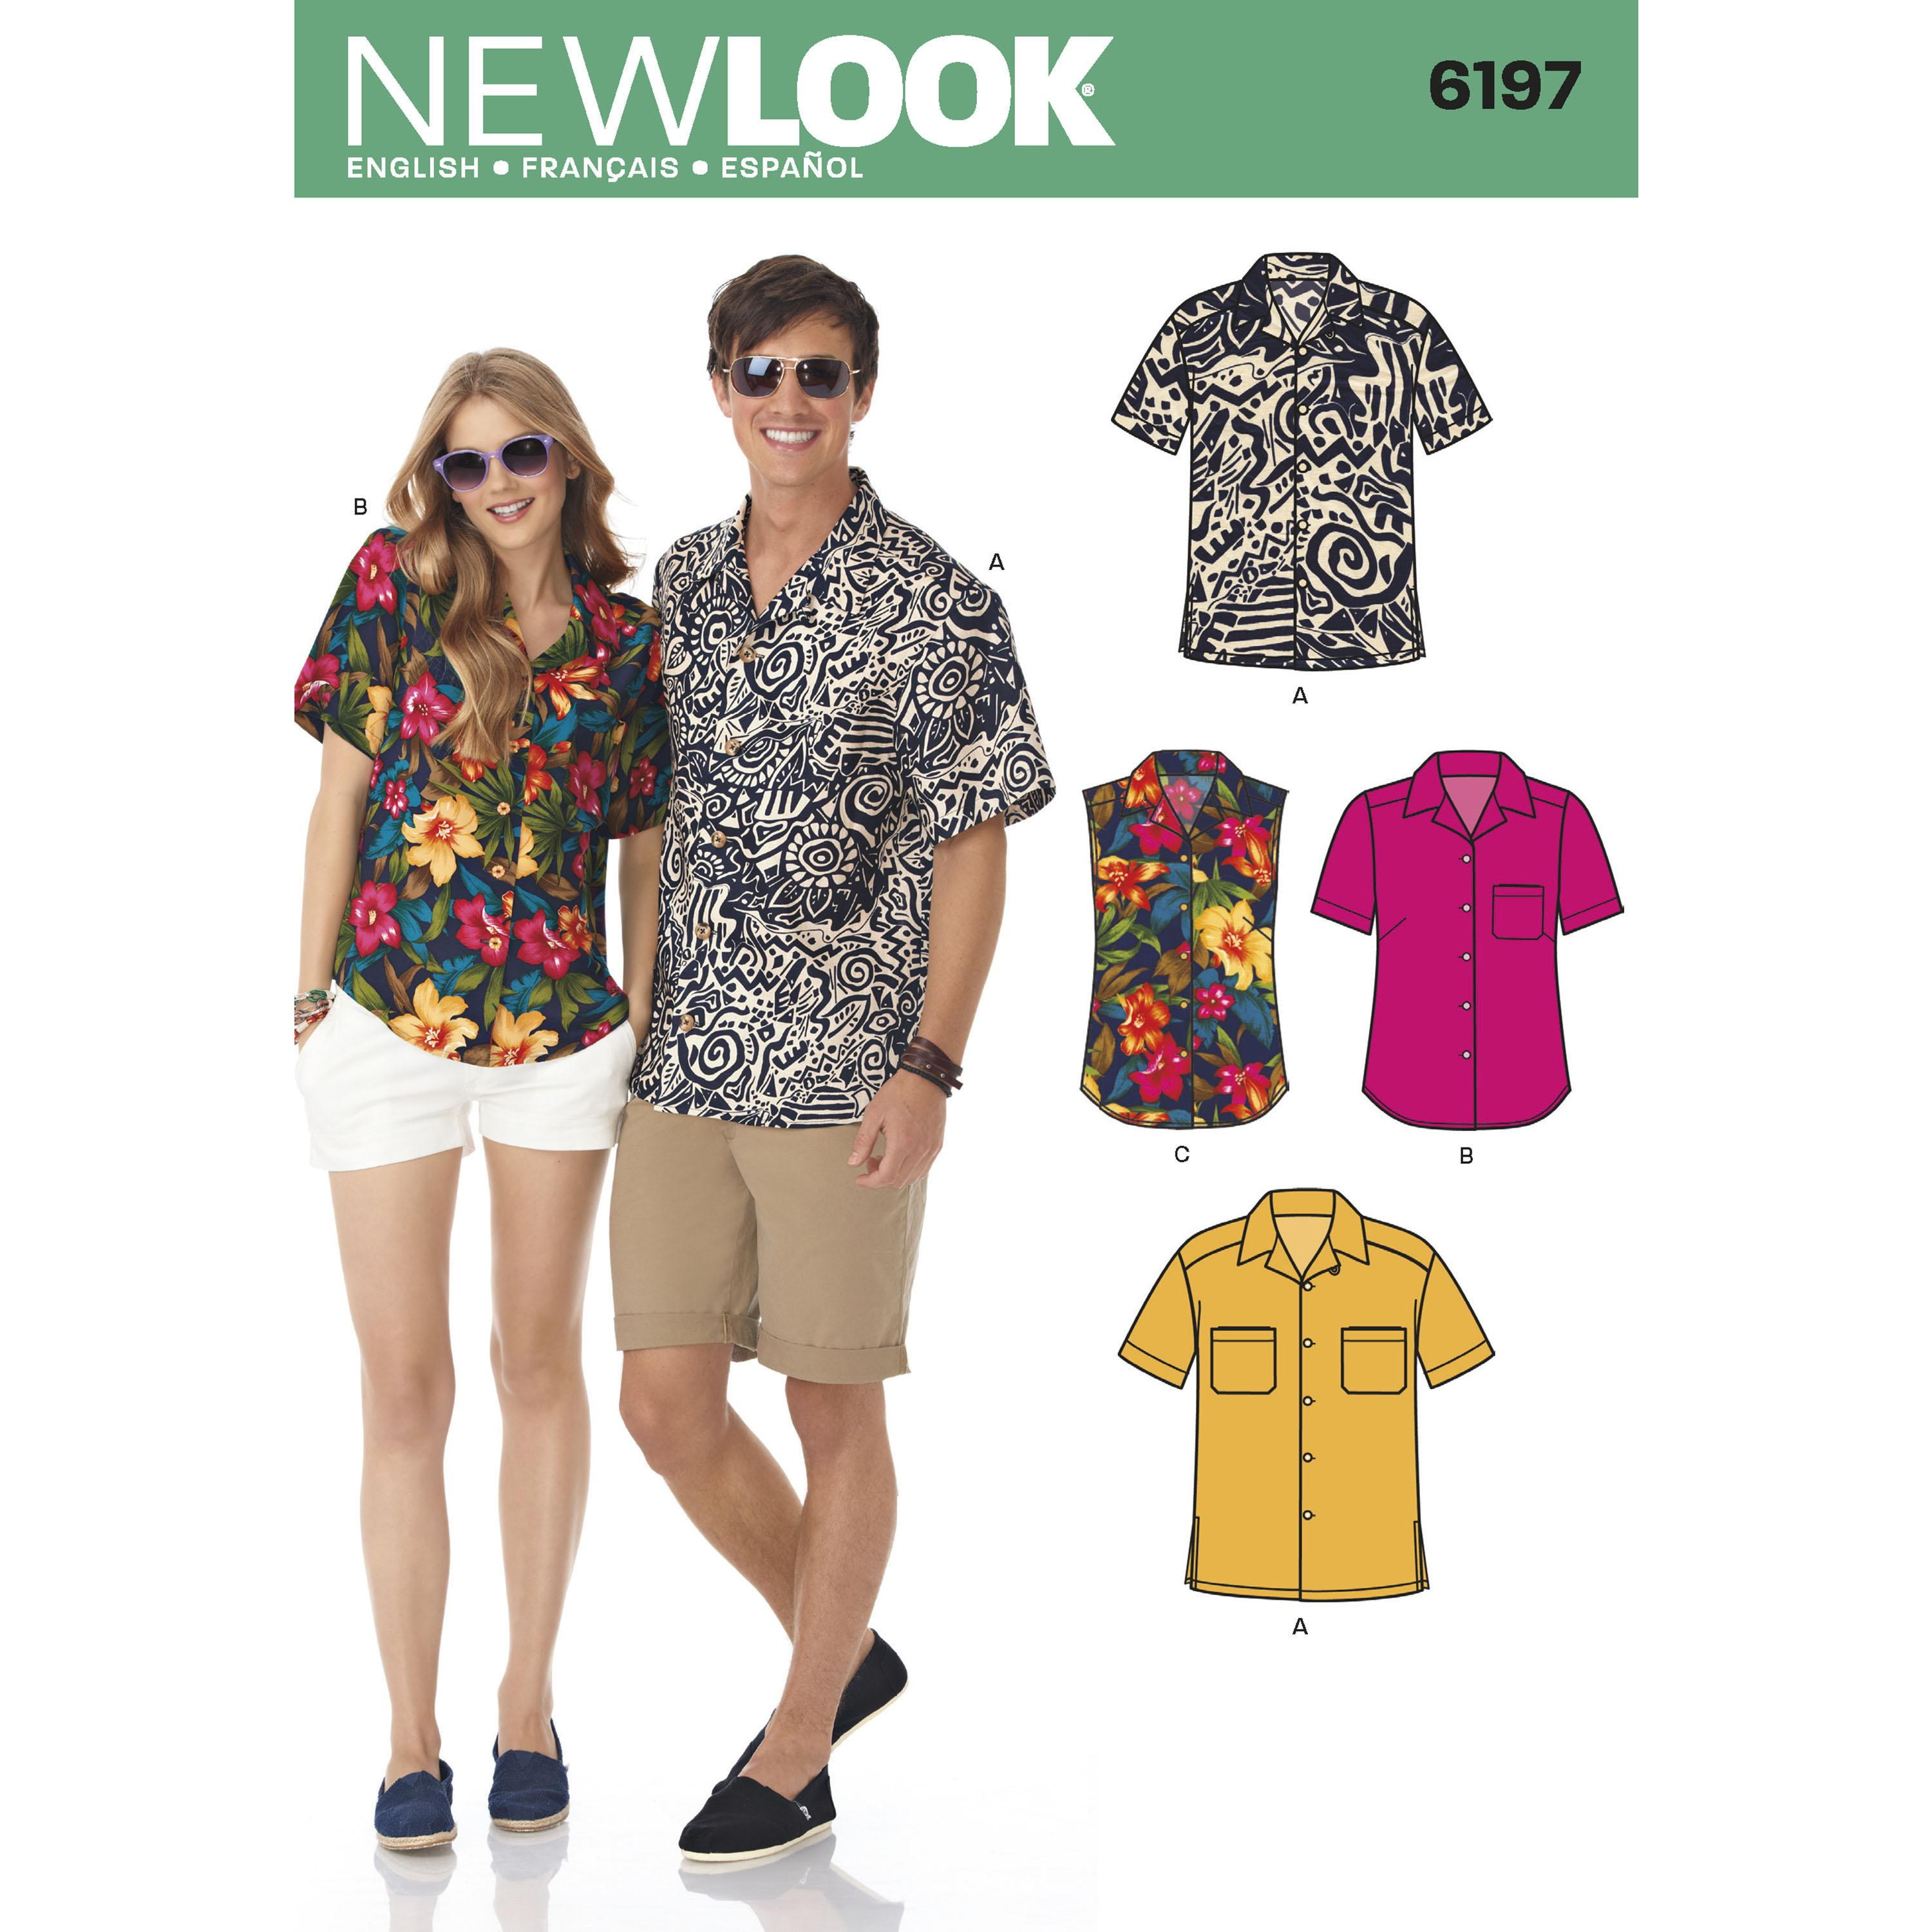 NewLook N6197 Misses' and Men's Shirts